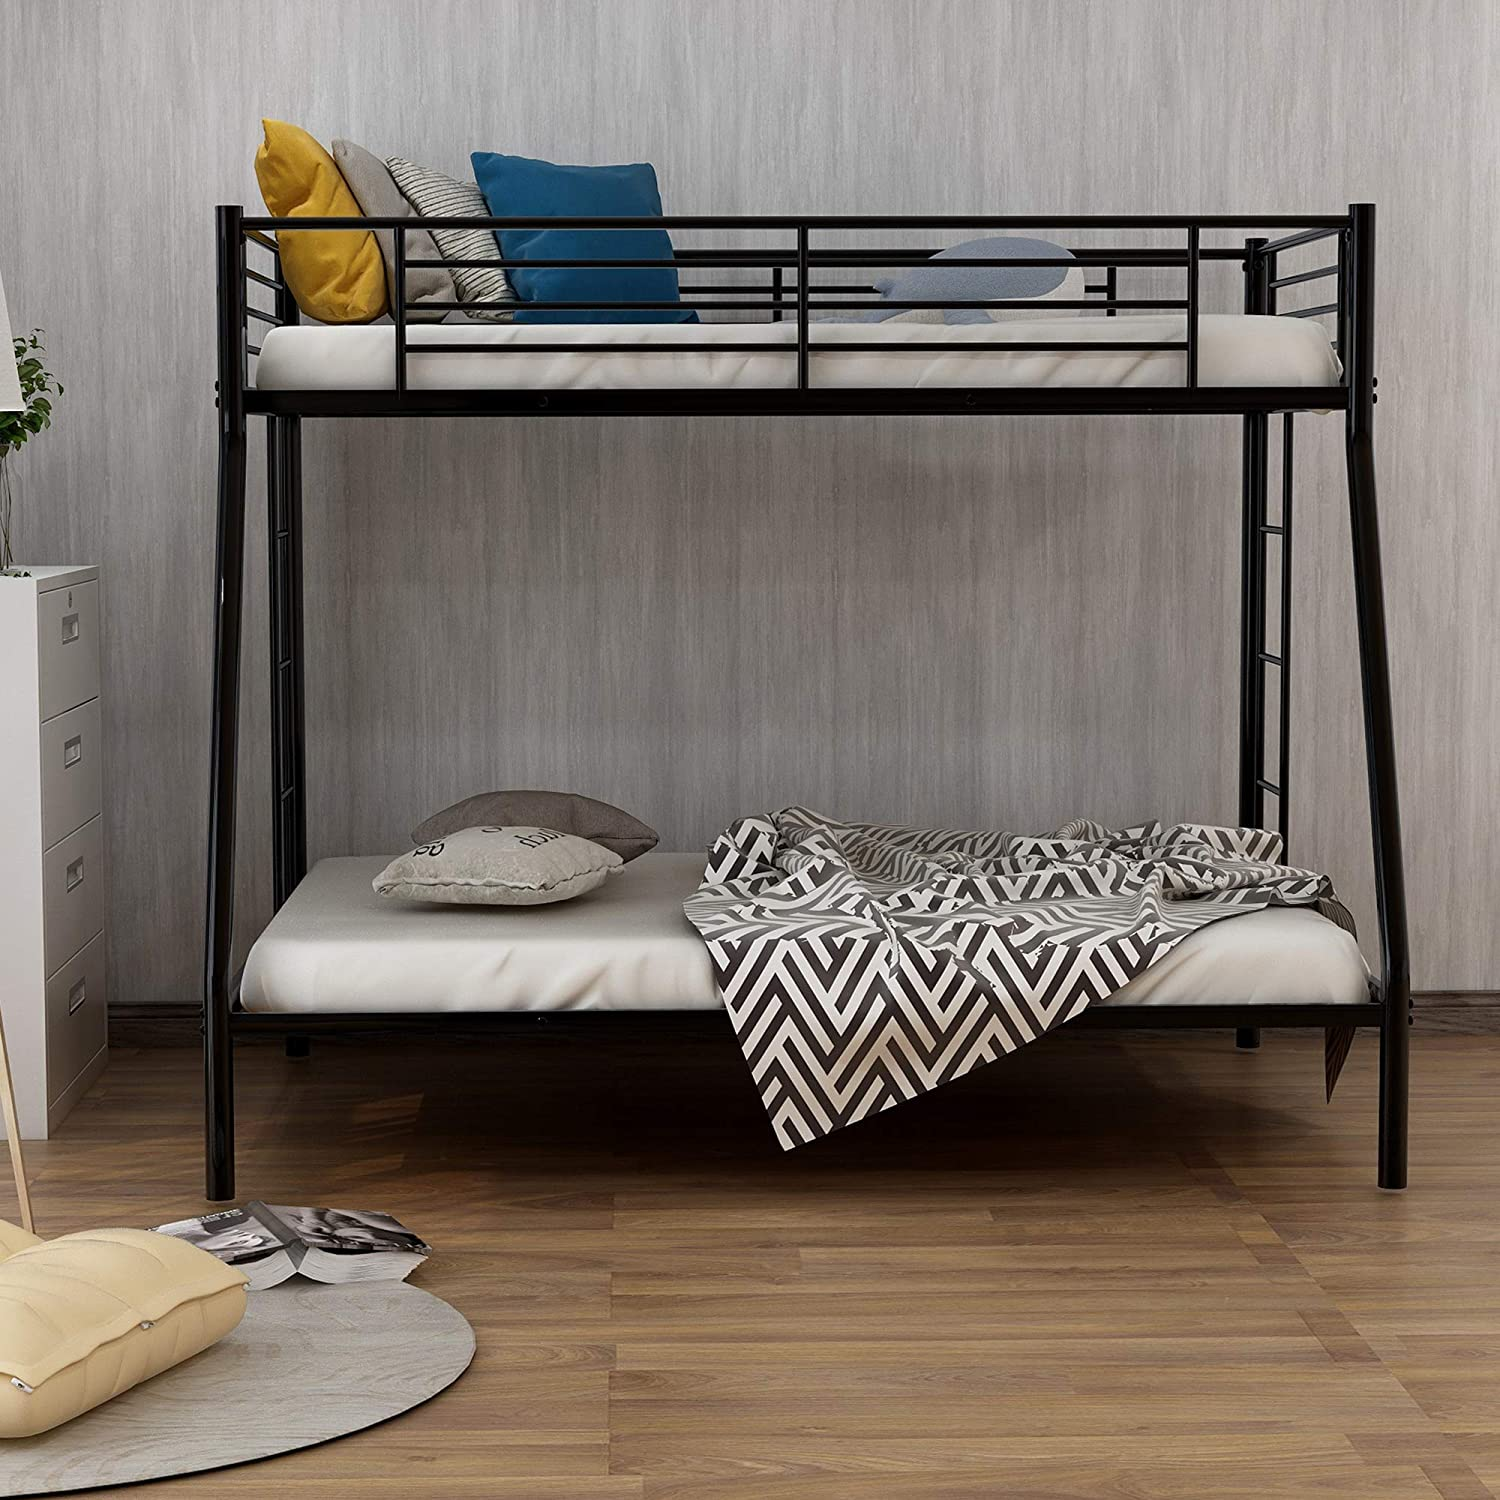 ALI VIRGO Twin-Over-Full Bunk Bed,with Metal Sturdy Frame and Ladder, Space Saving Design for Bedroom,Apartment, Simple Black